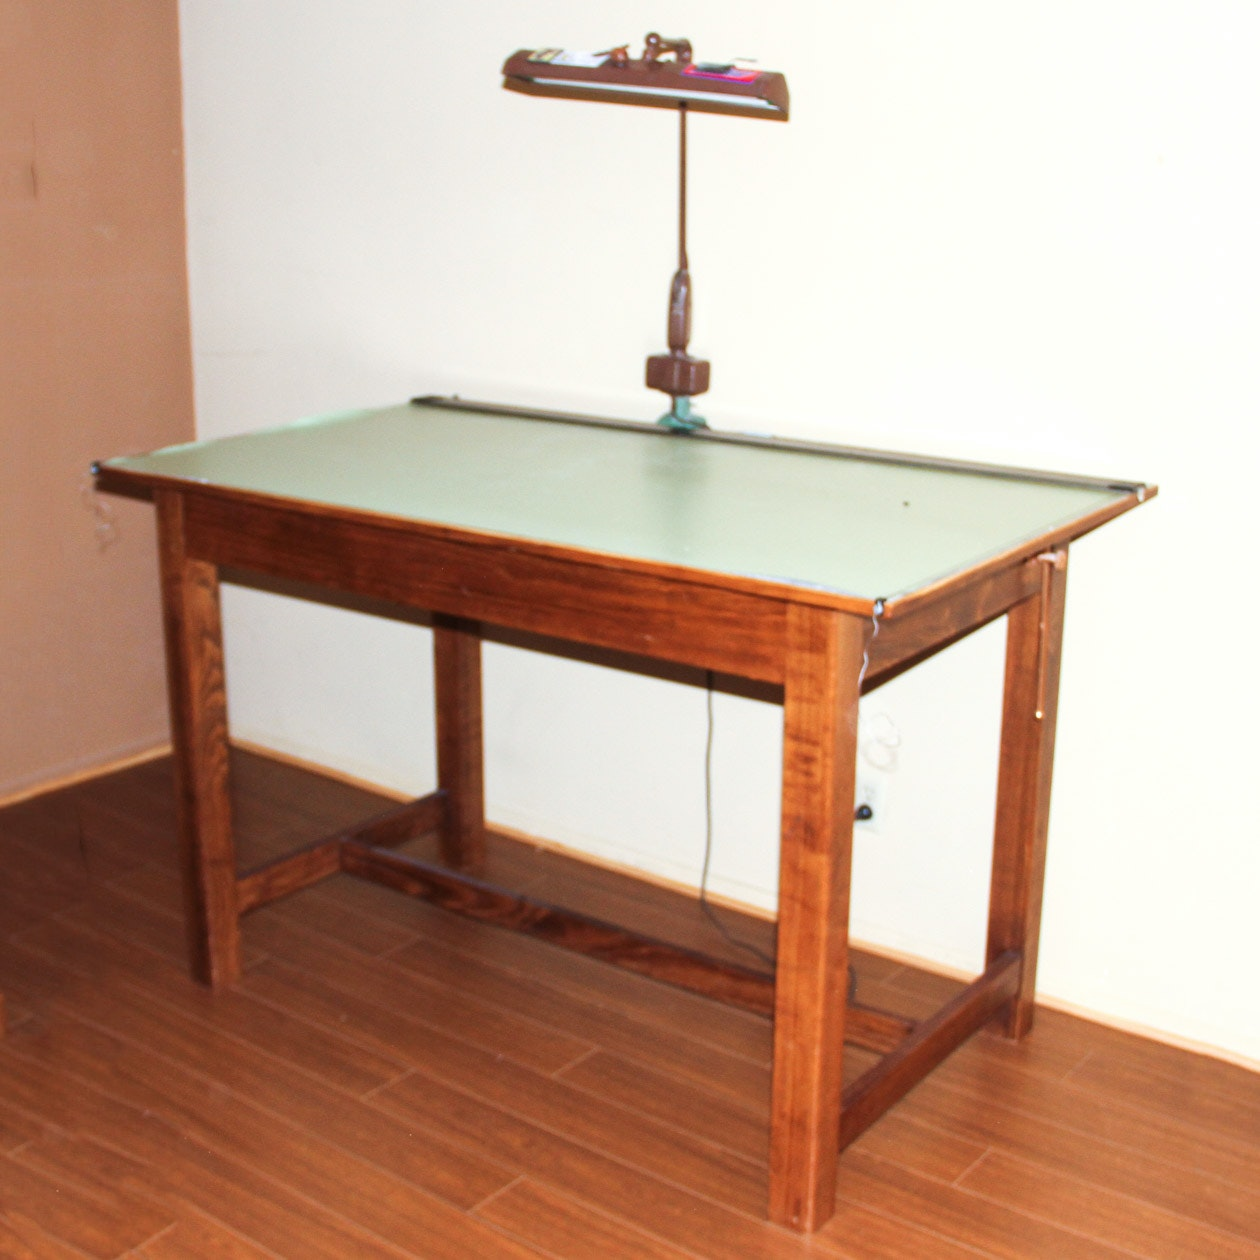 Vintage Drafting Table with Lamp